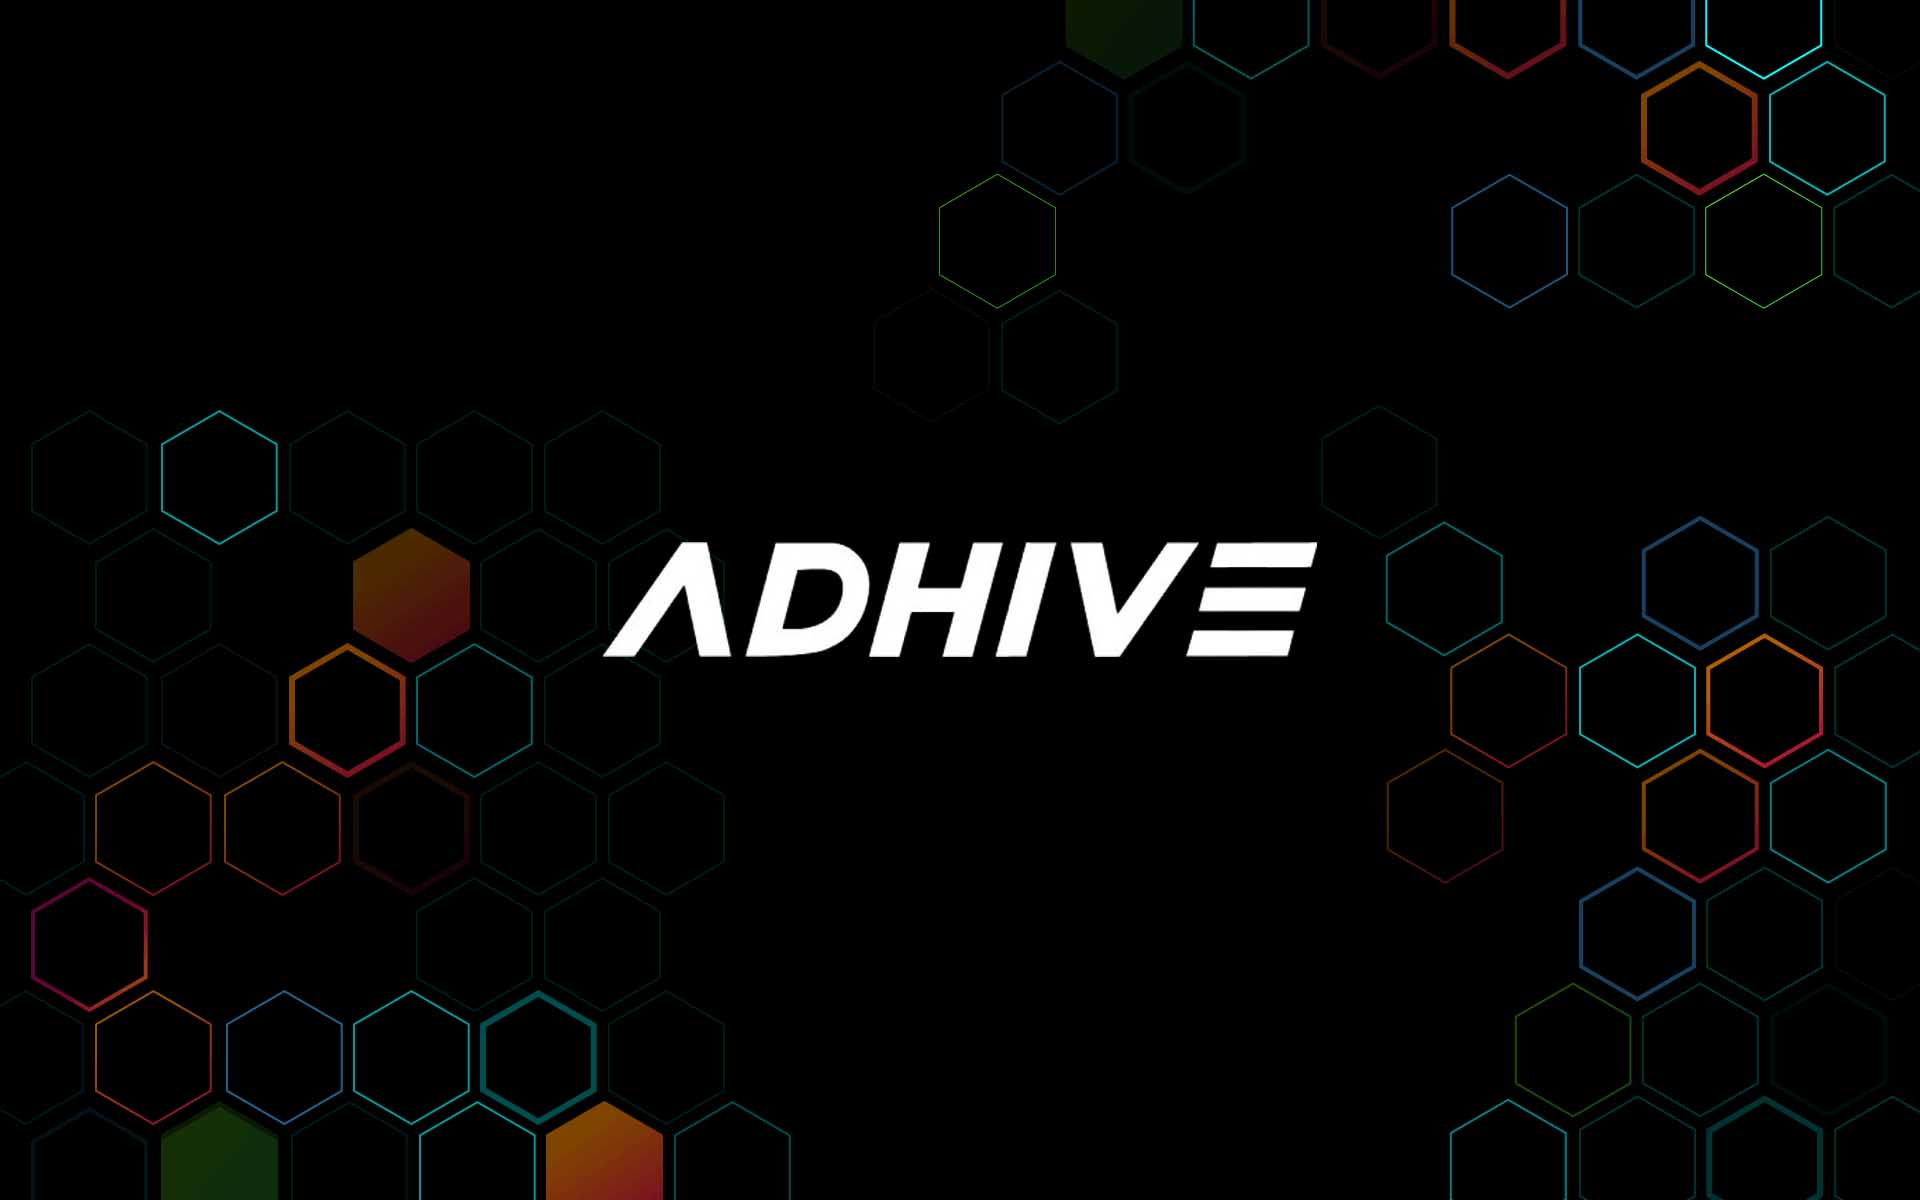 AdHive Platform To Conclude $ 5.5M Presale In 36 Minutes, Gears Up For Token Sale